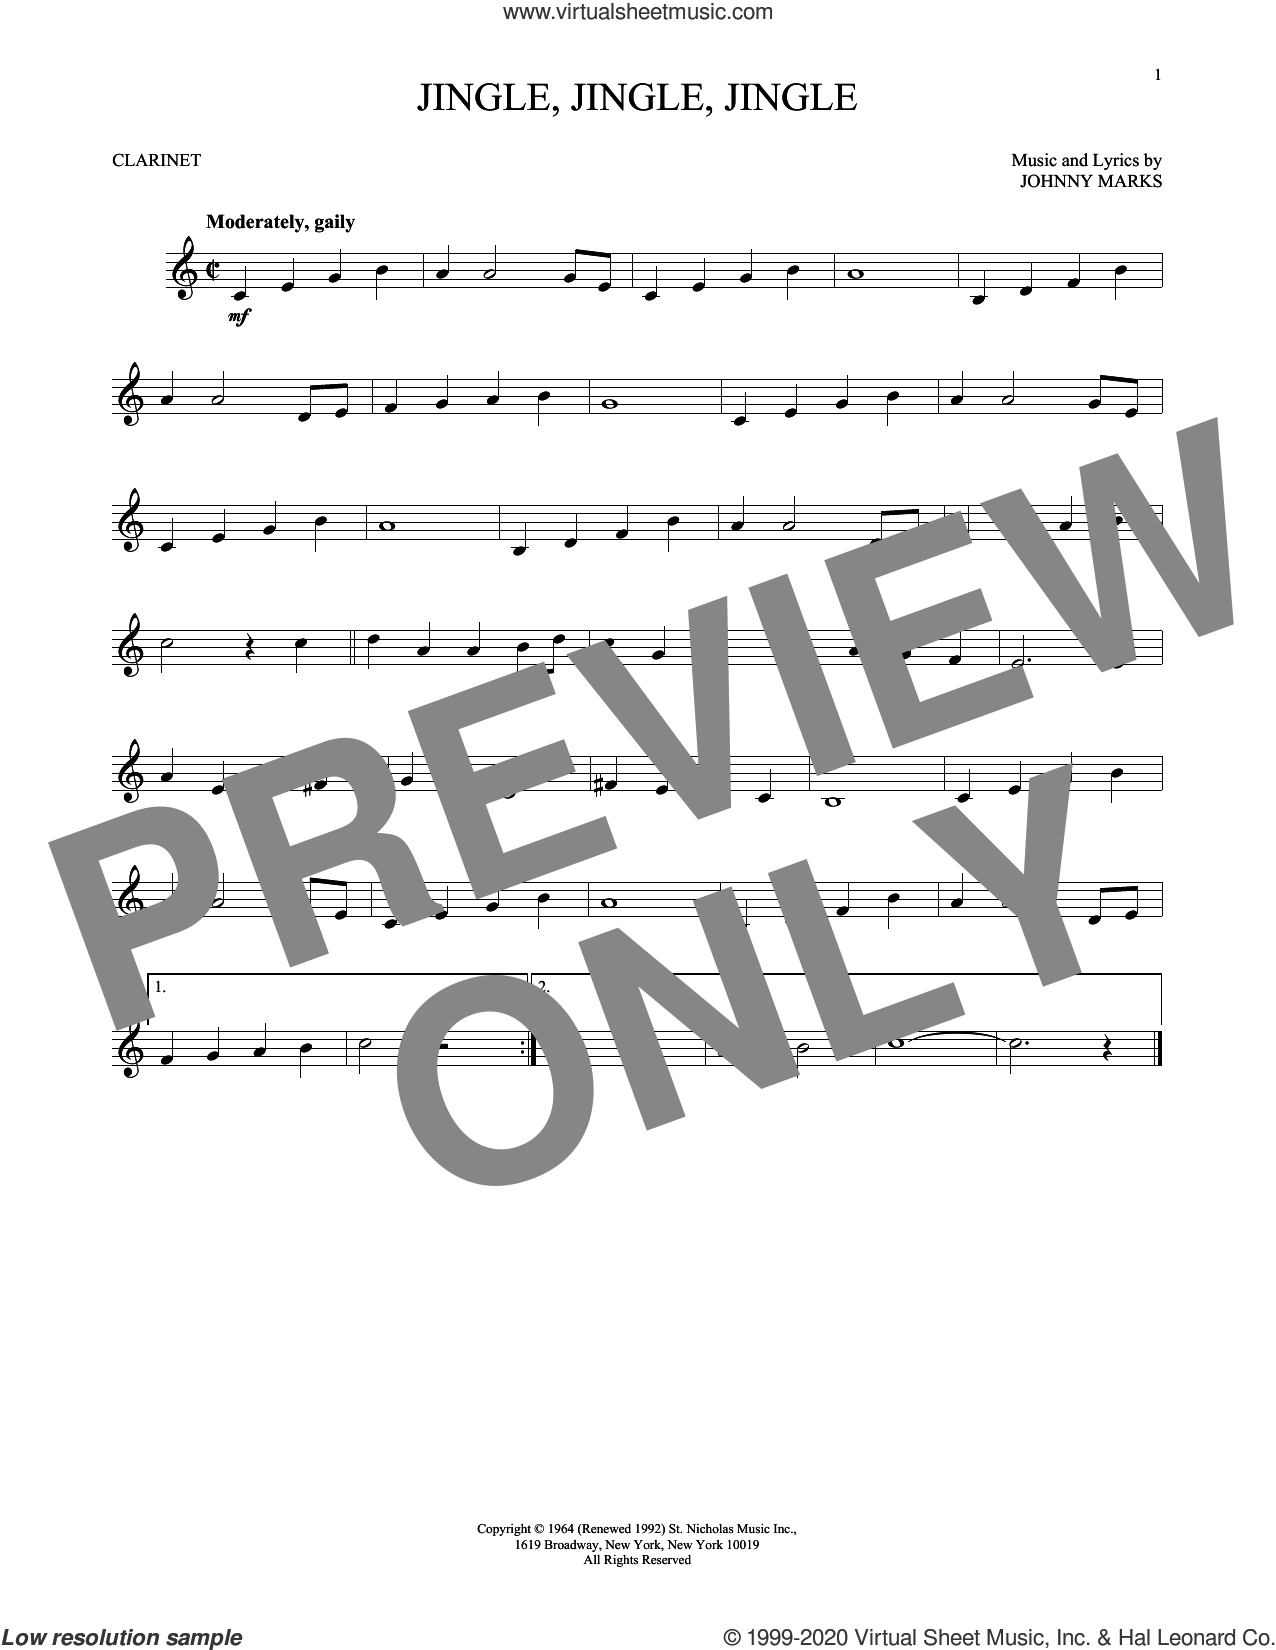 Jingle, Jingle, Jingle sheet music for clarinet solo by Johnny Marks, intermediate skill level